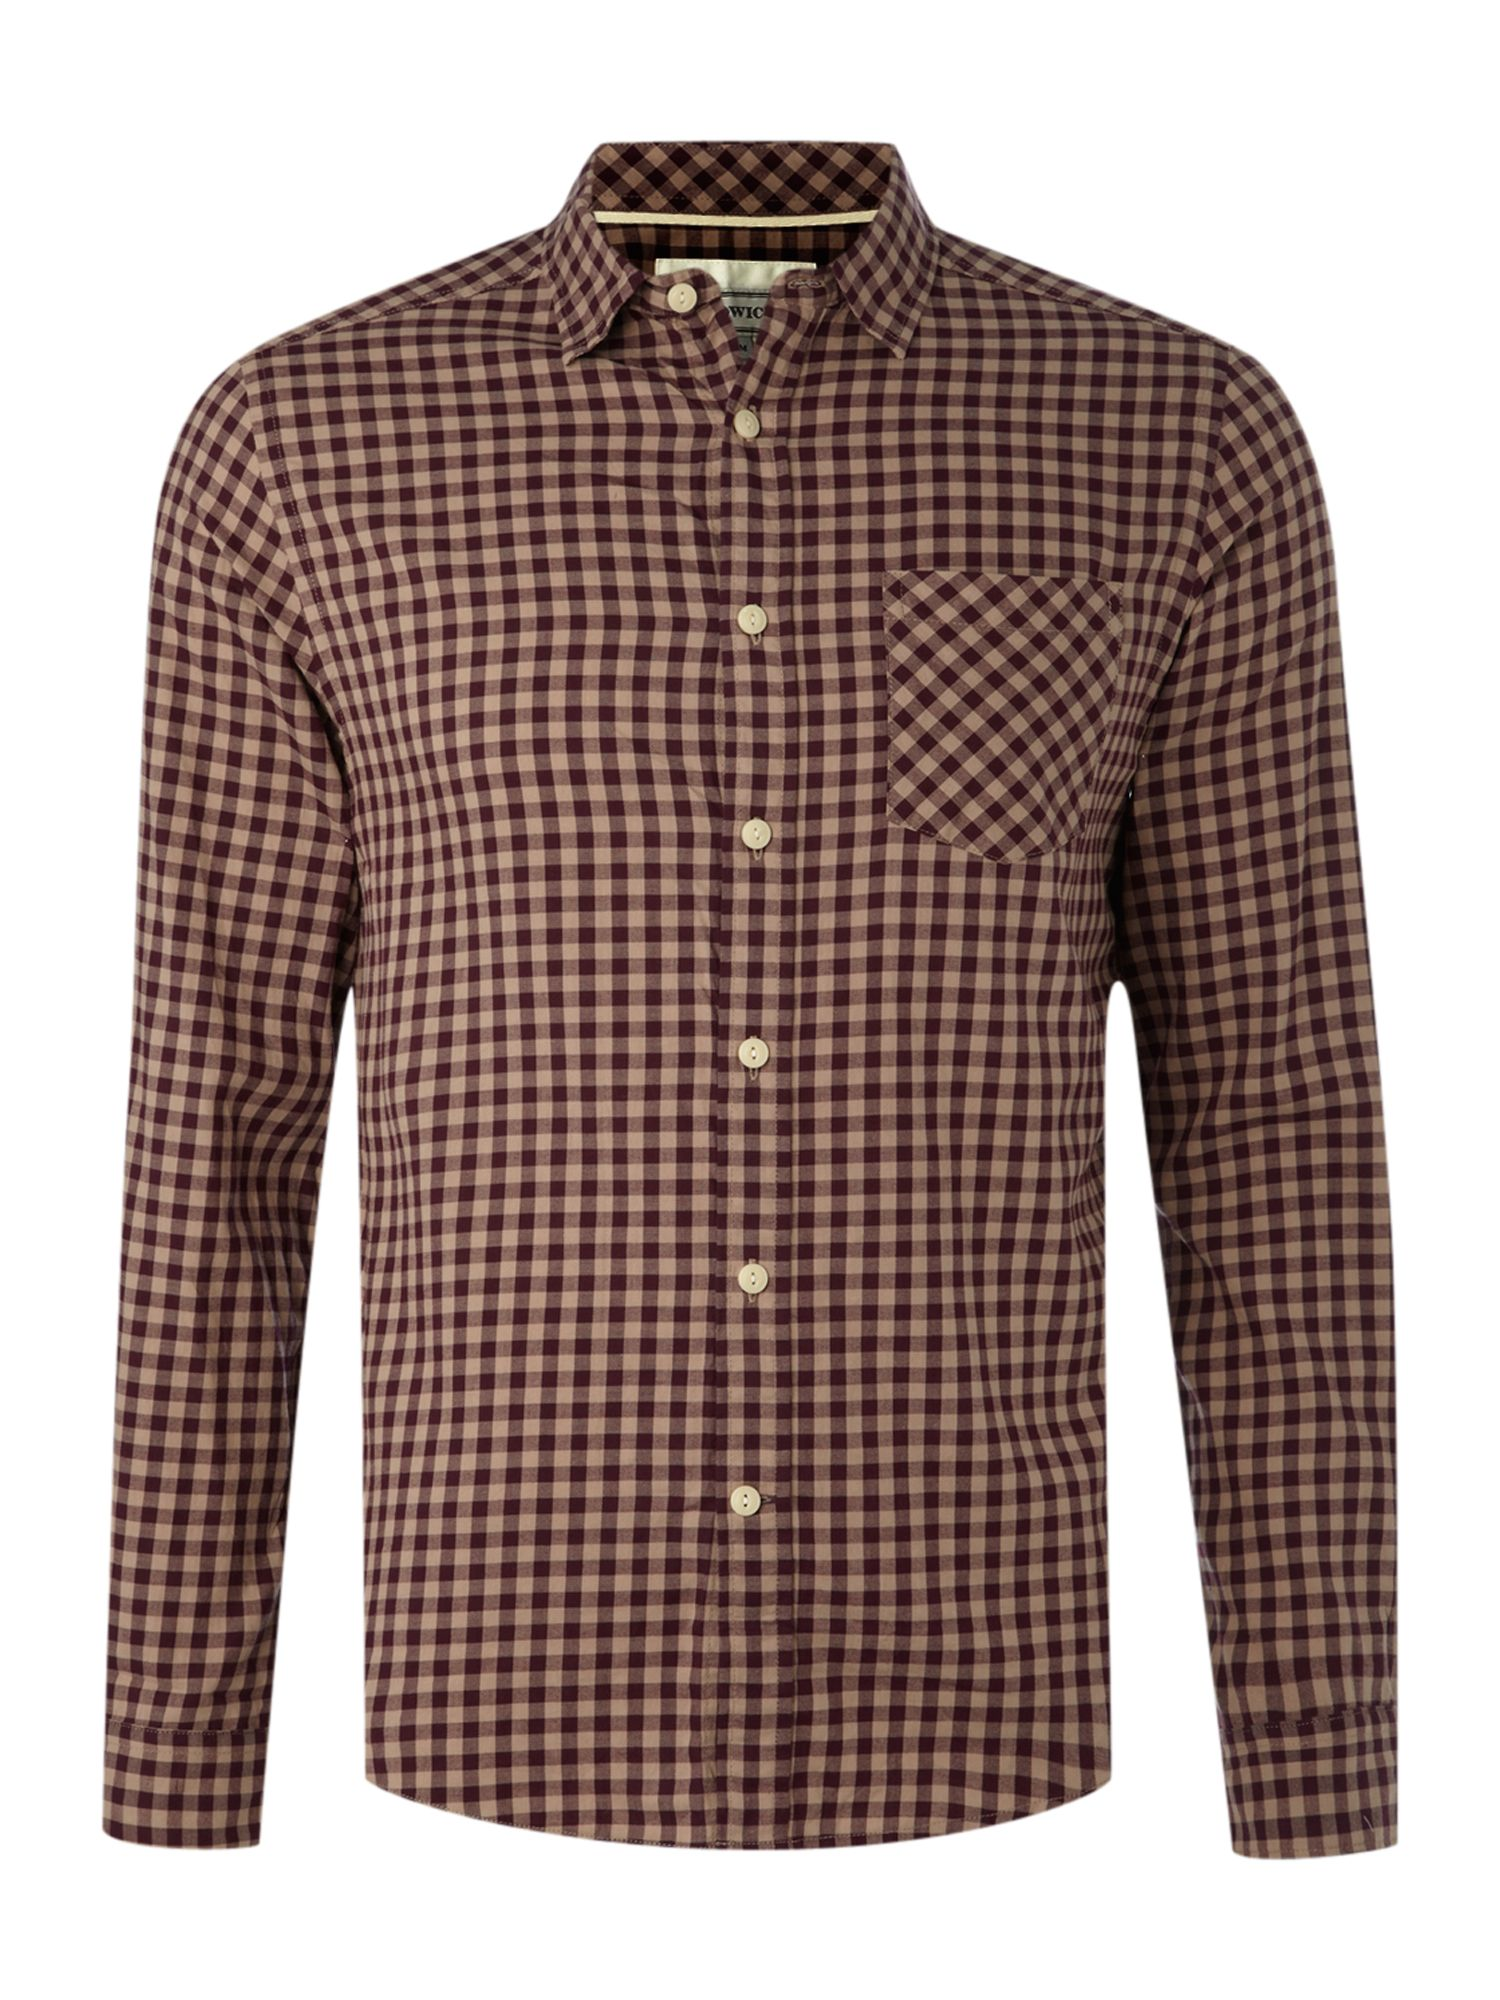 Outsiders Twill Gingham shirt